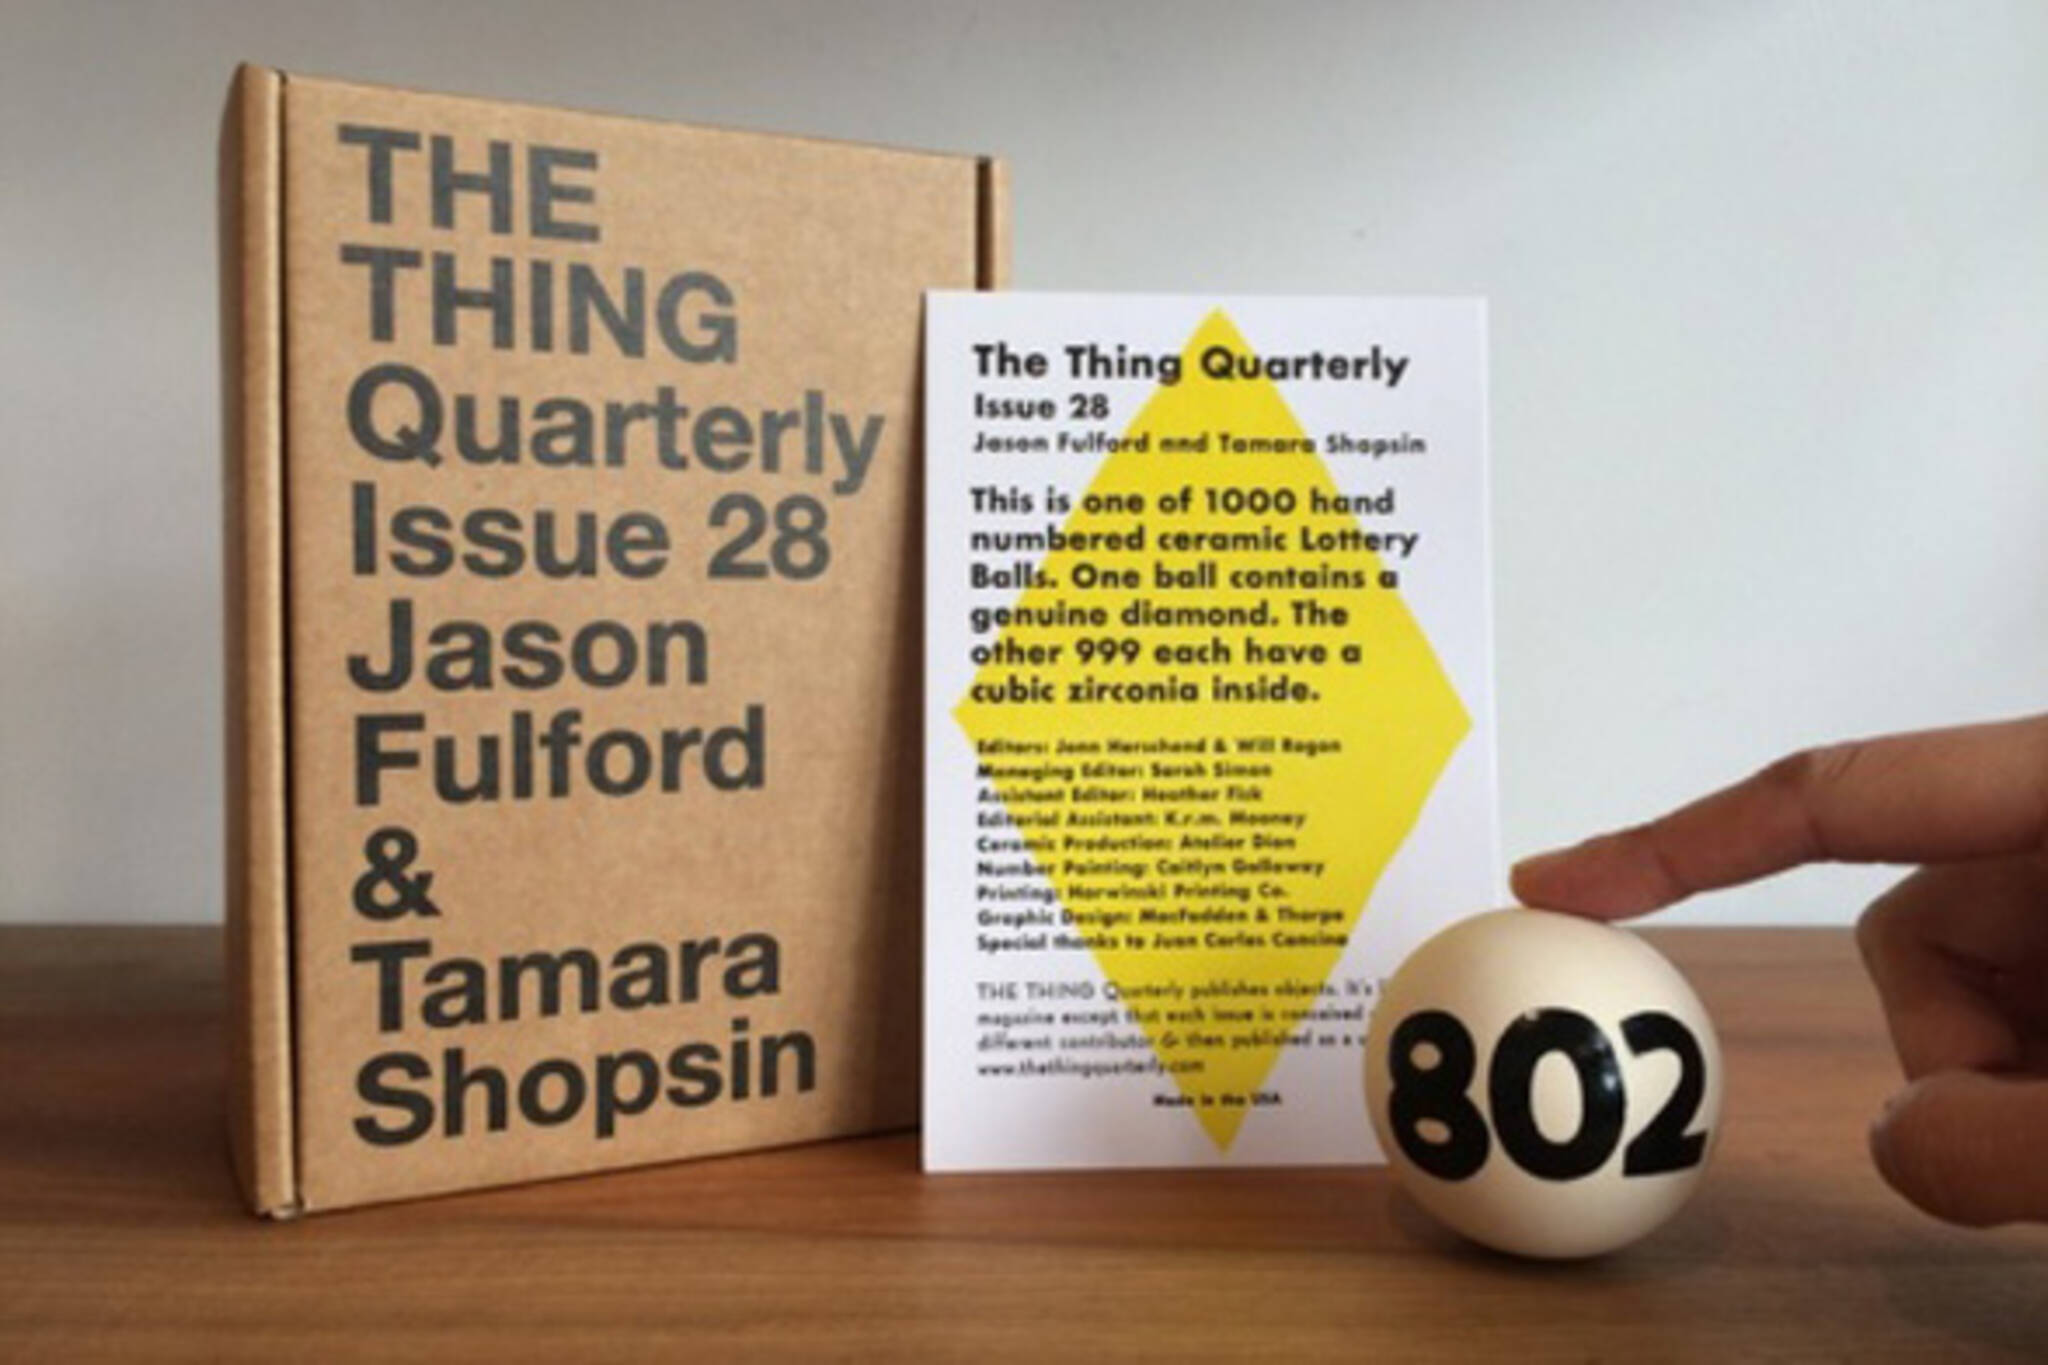 the thing quarterly issue